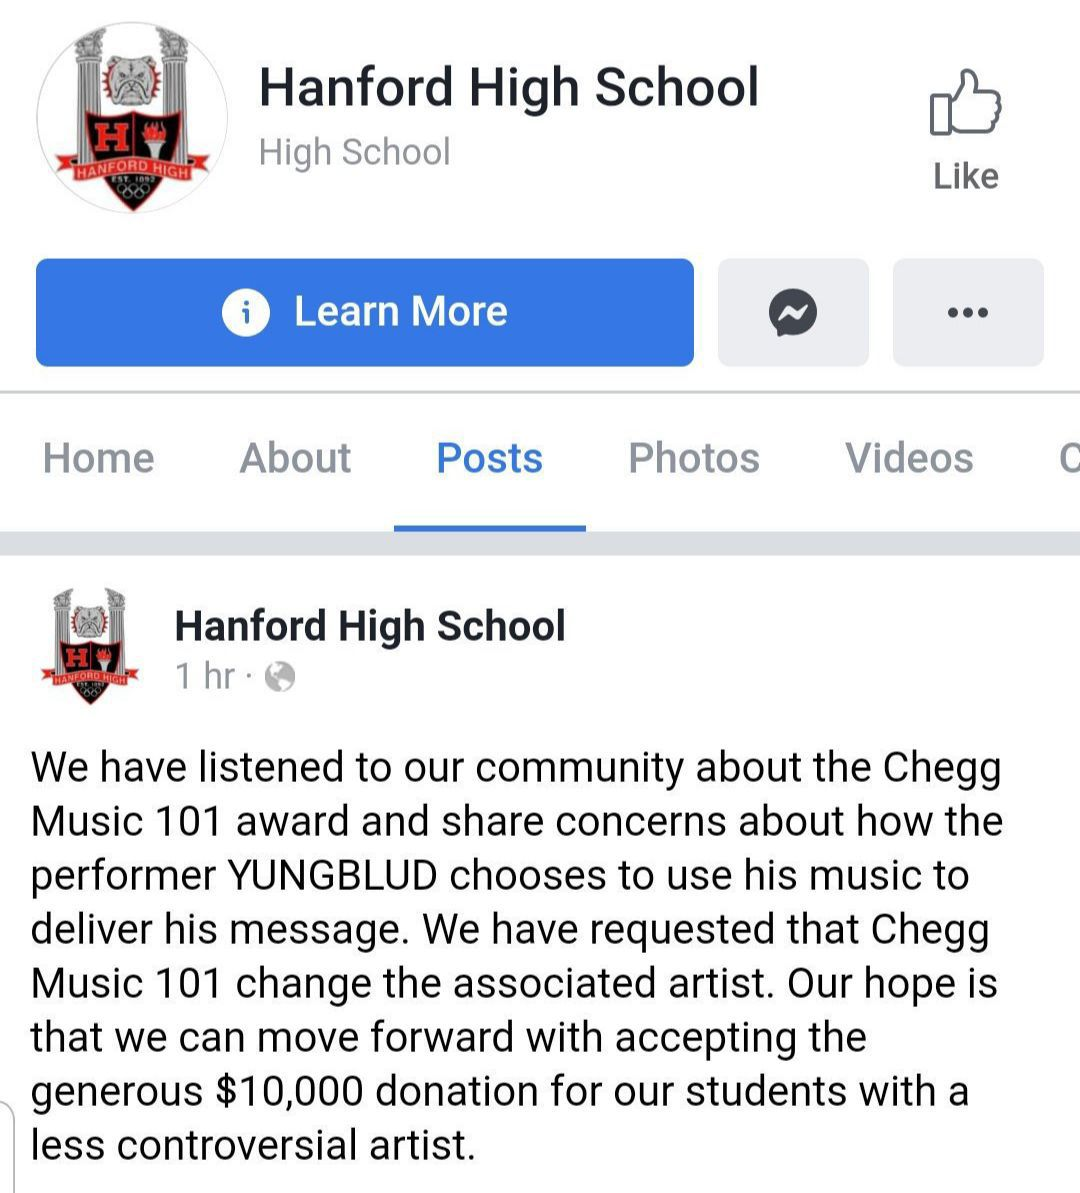 HHS YUNGBLUD post